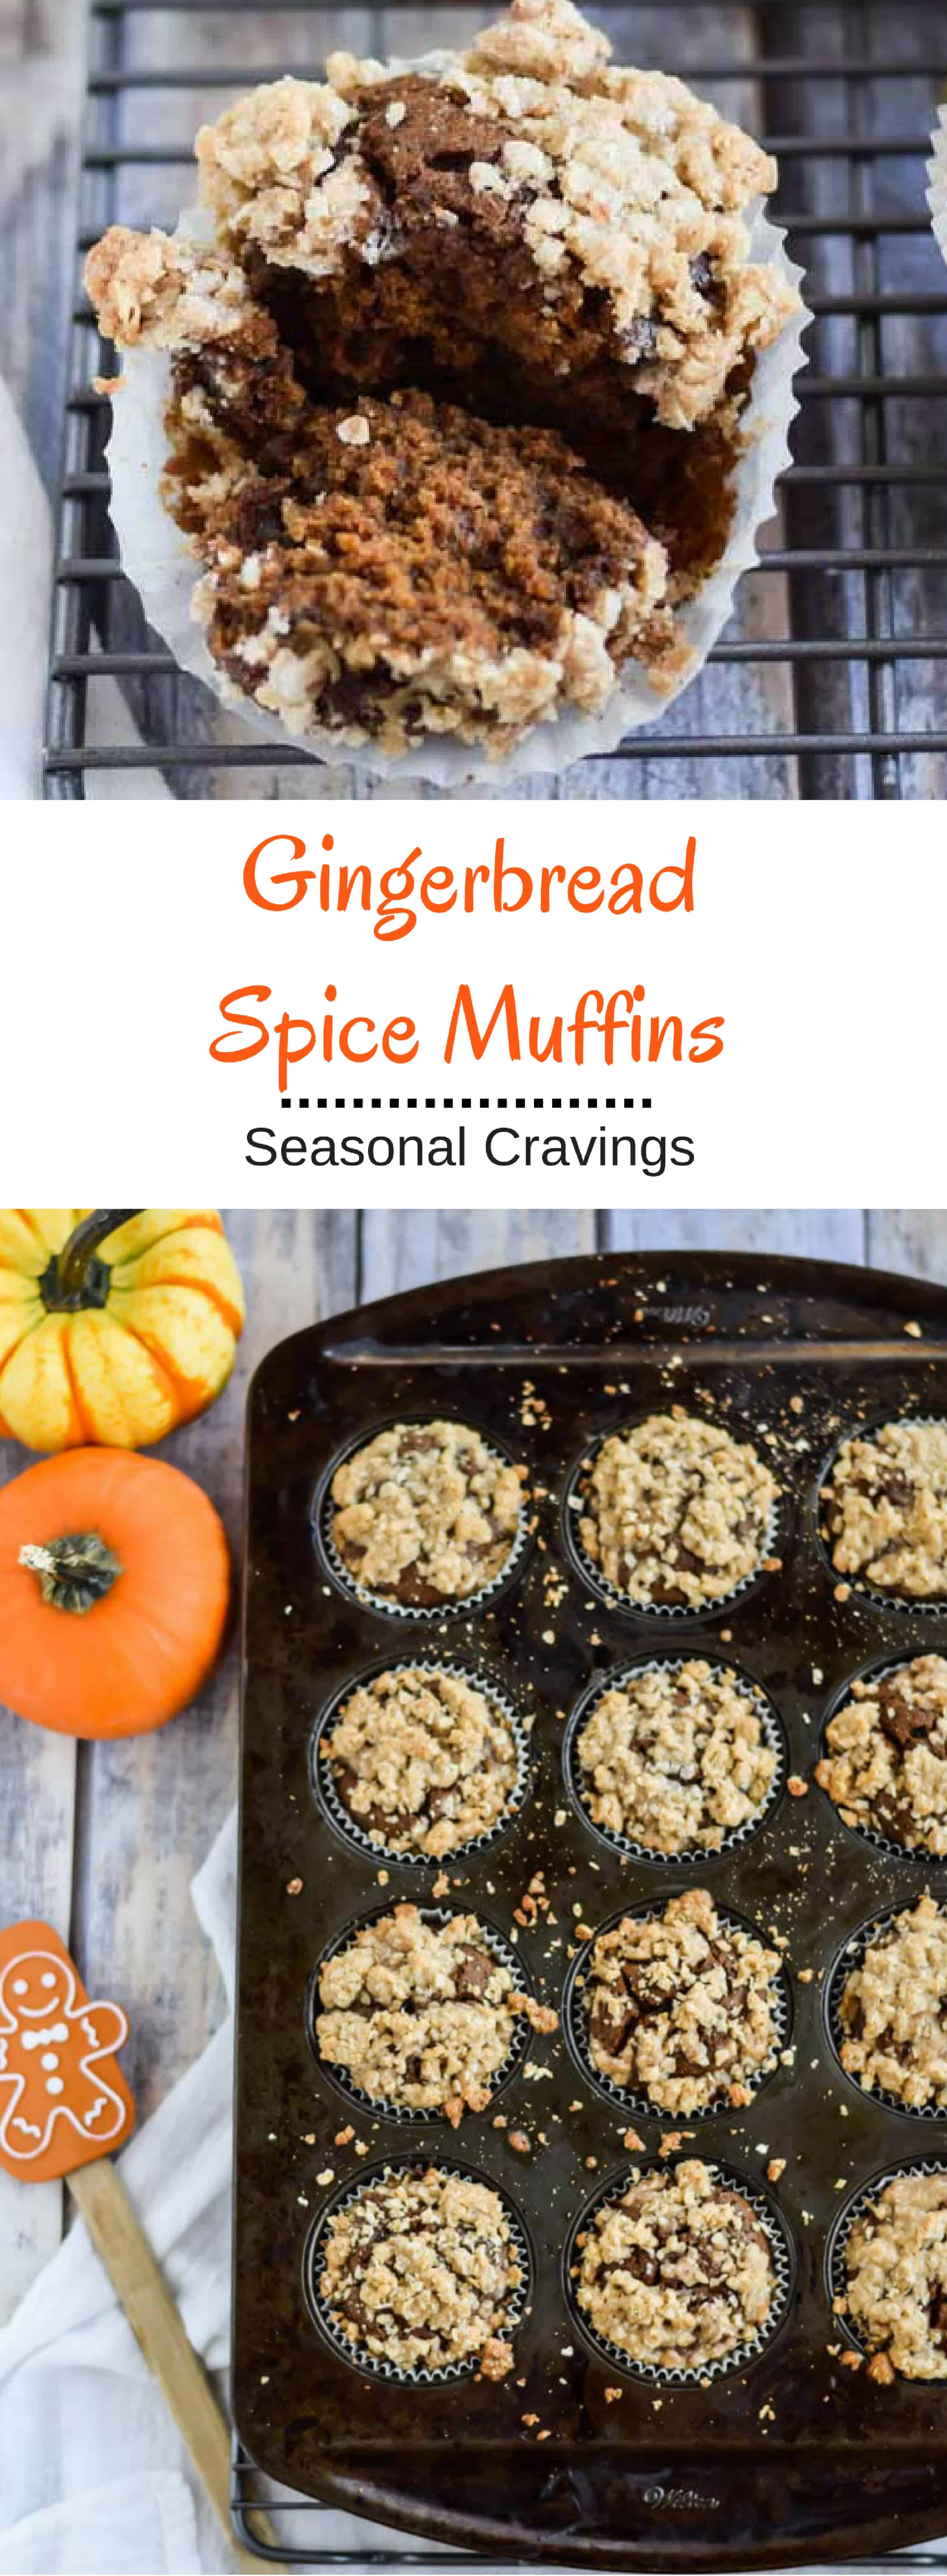 Gingerbread Spice Muffins